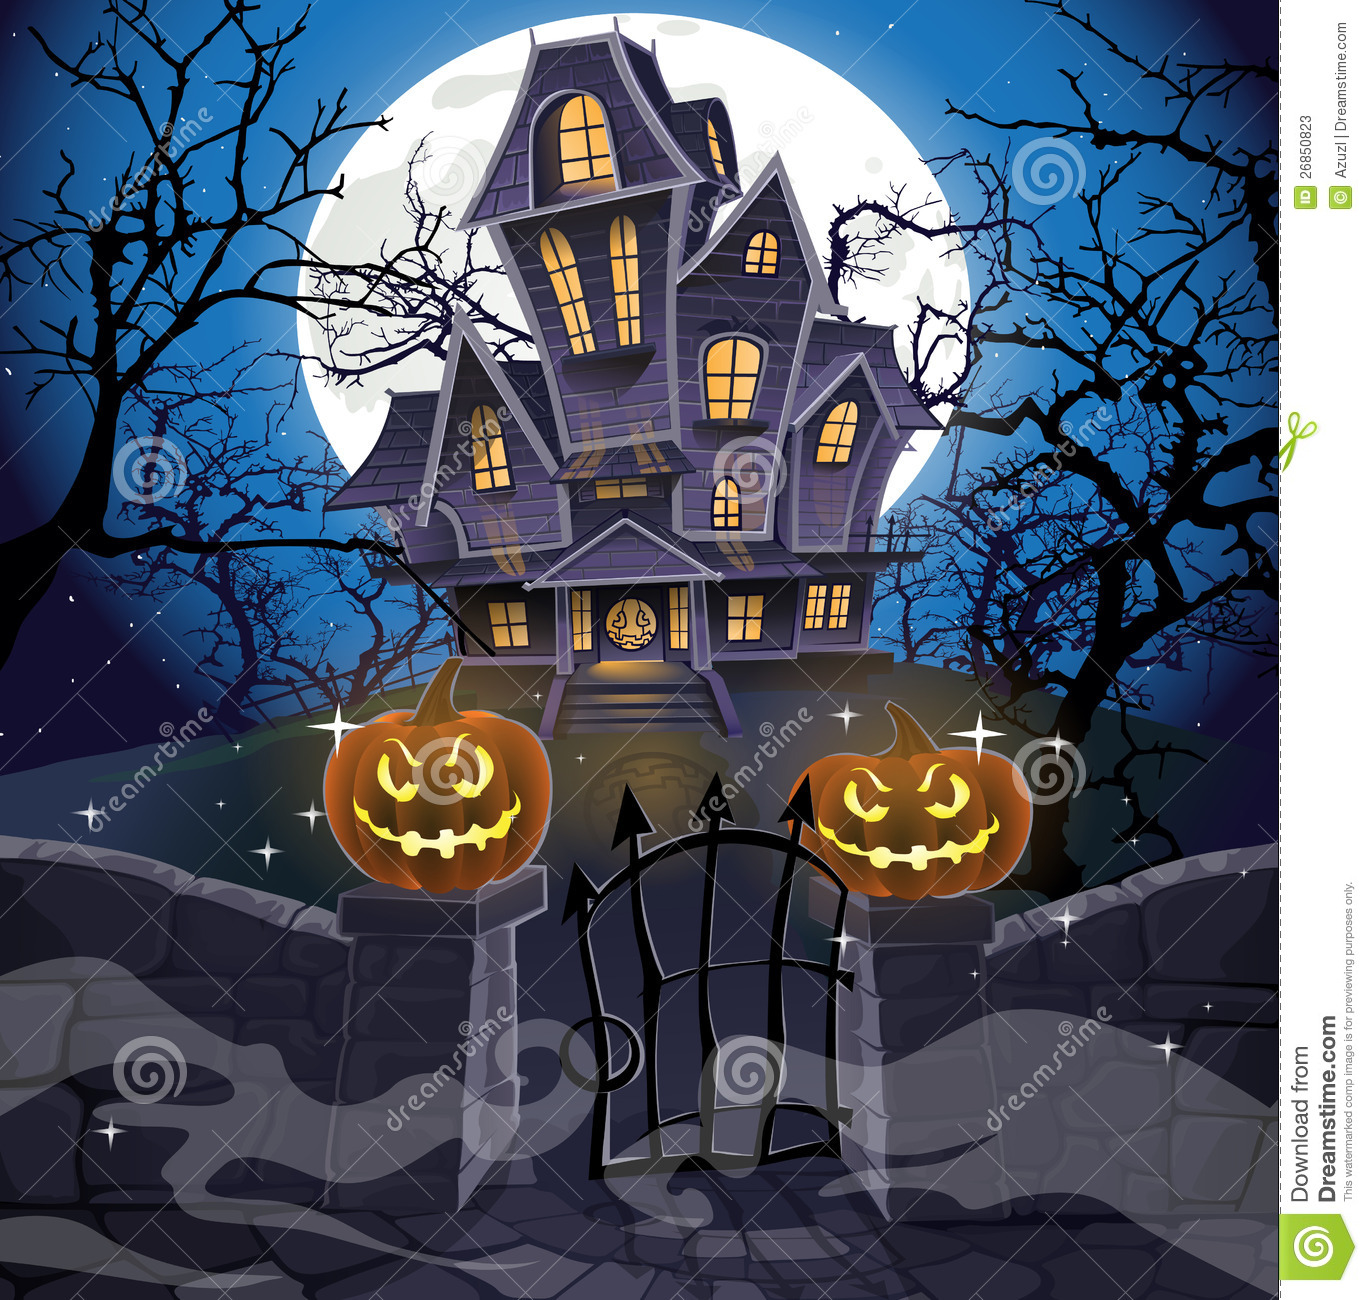 Fall Scenes Wallpaper With Pumpkins Happy Halloween Cozy Haunted House Stock Photos Image